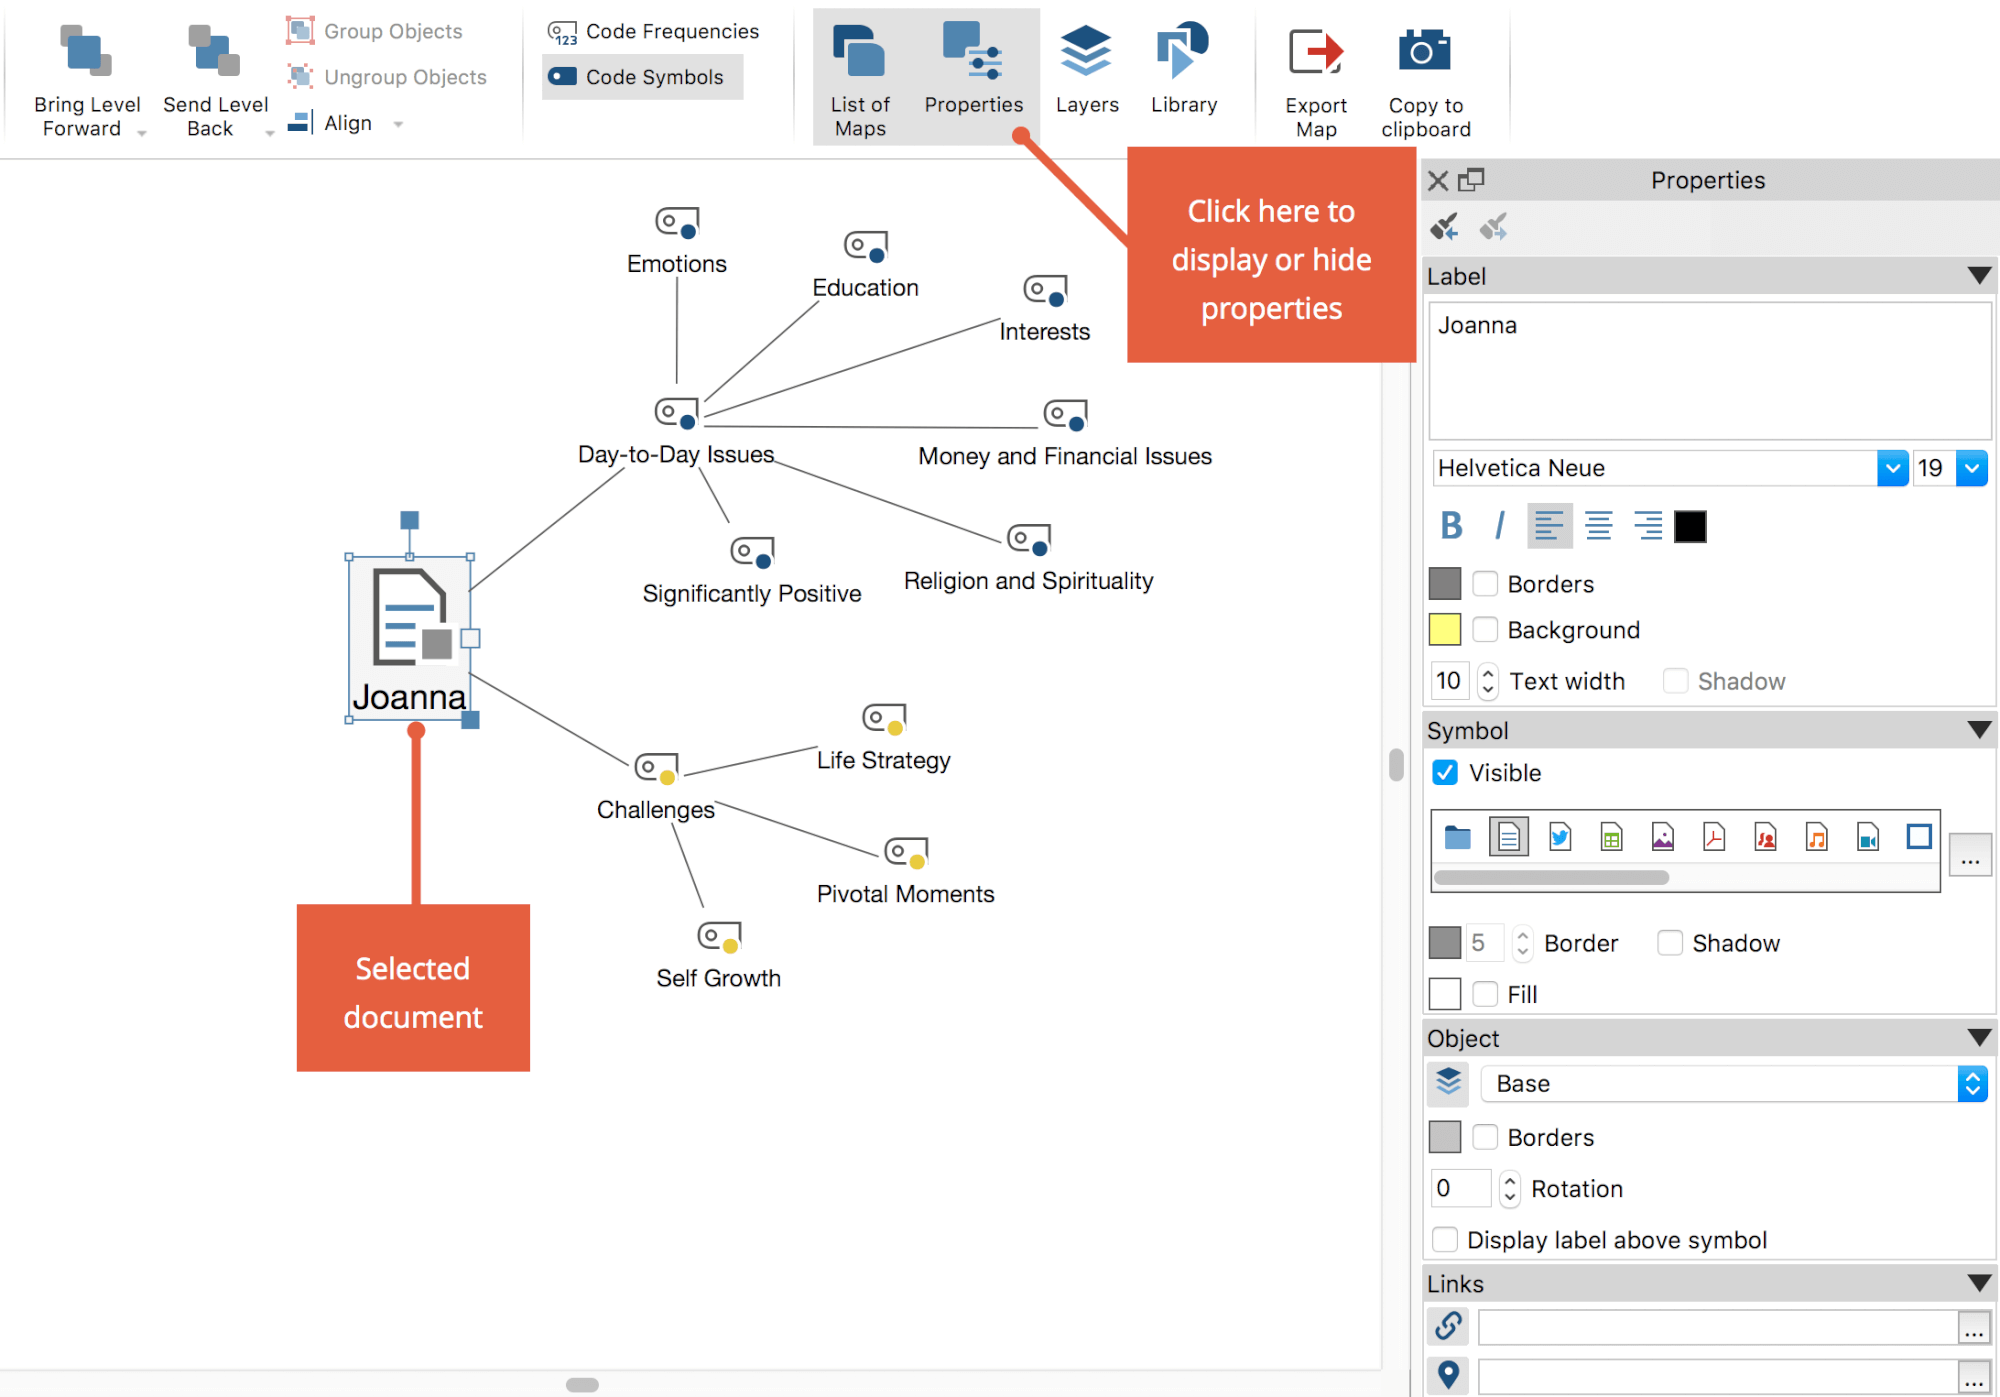 Customize Objects in MAXMaps - MAXQDA - The Art of Data Analysis